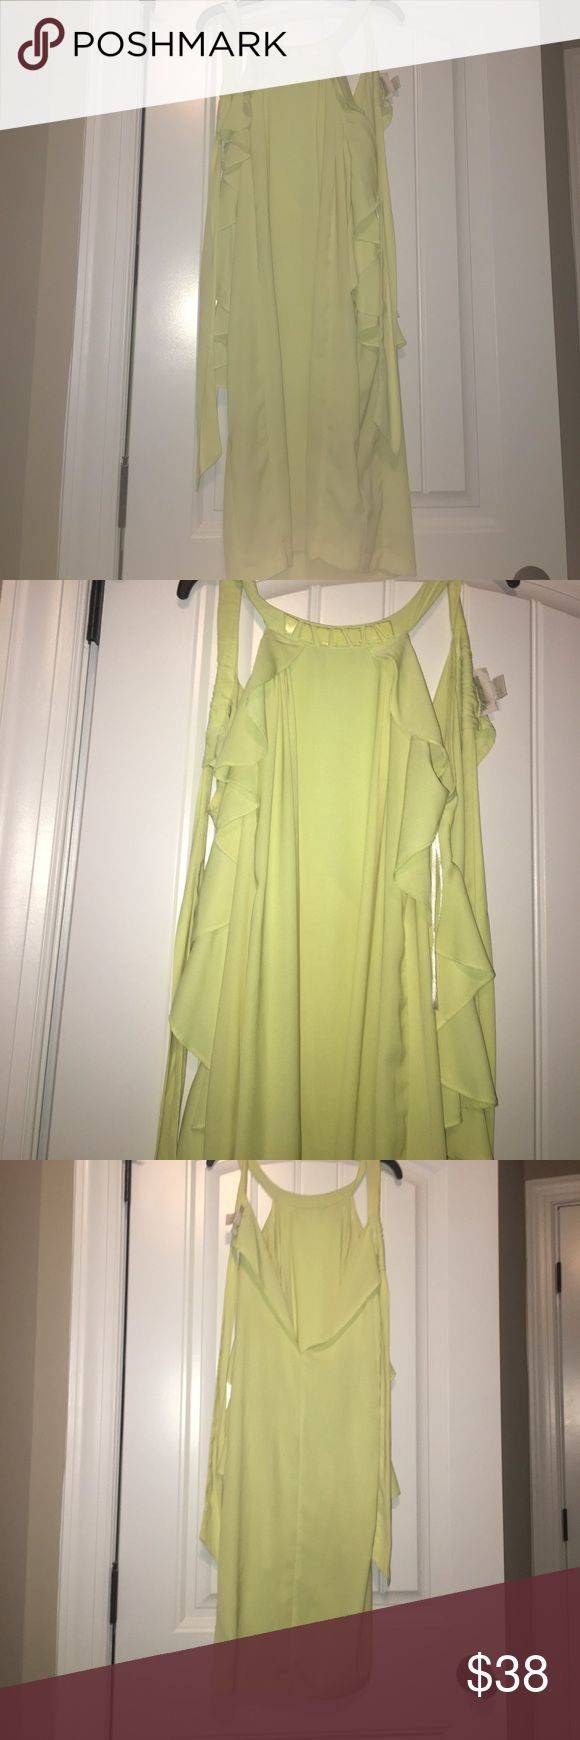 H&M Conscious Collection Vanessa Paradis neon yellow dress; ruffles sides on the dress; trapezoid beads on the collar H&M Dresses